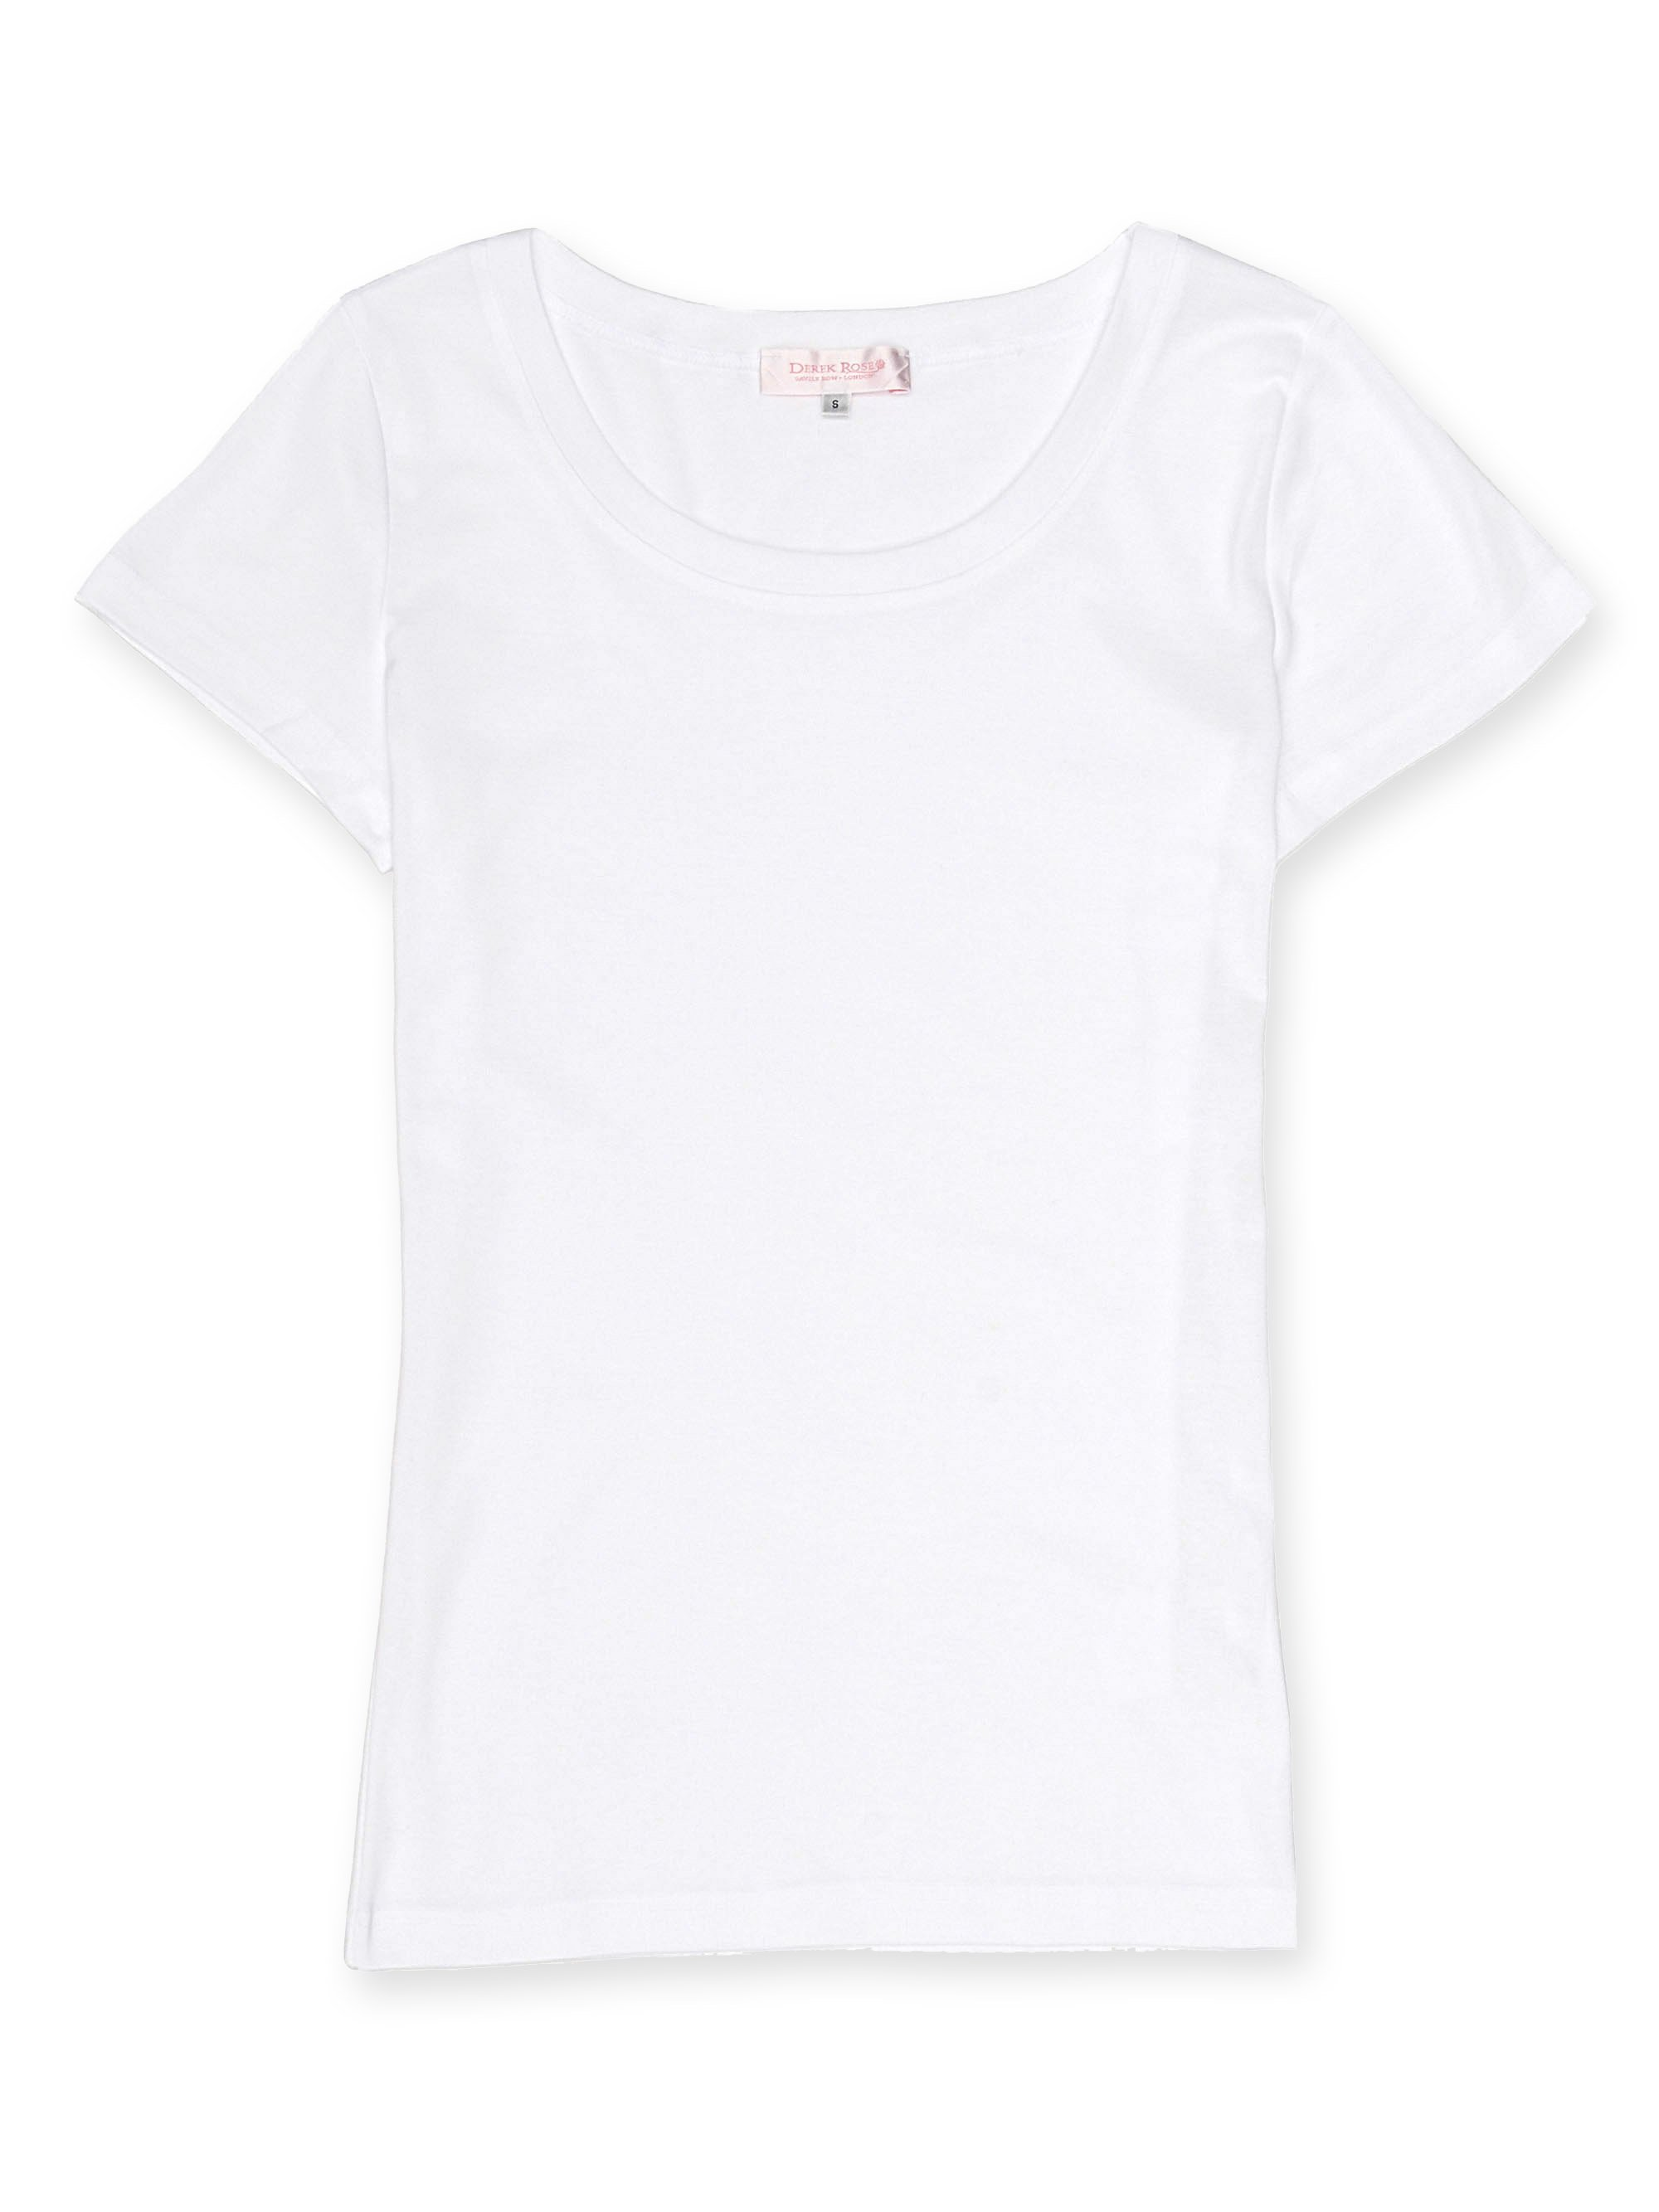 Eden 1 White T-Shirt